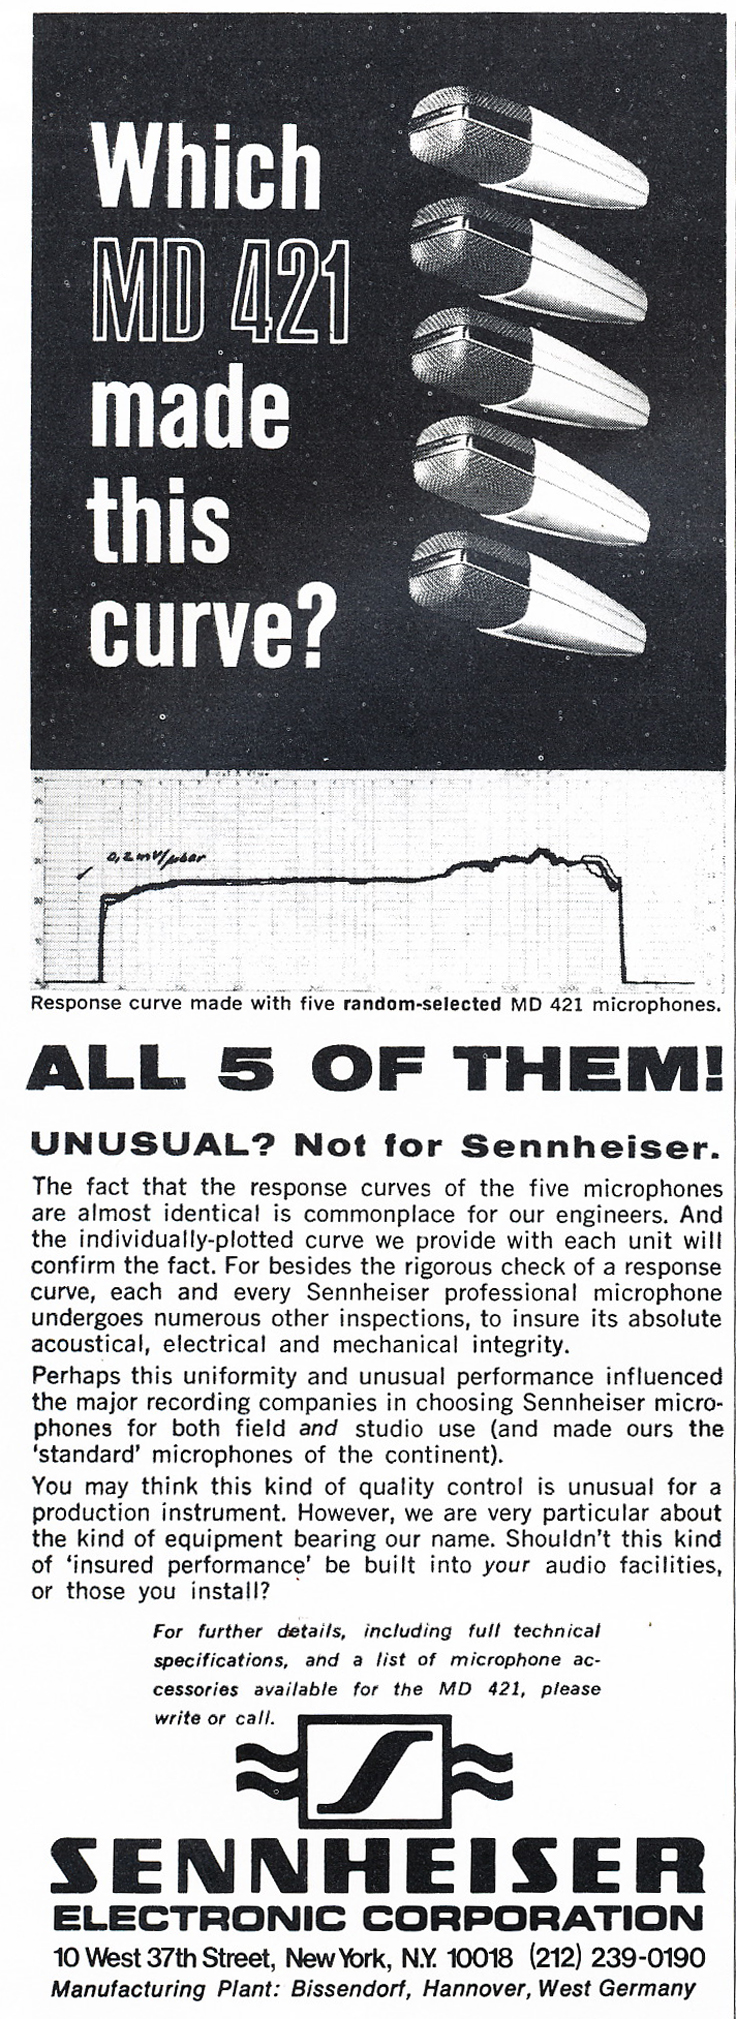 1975 ad for Sennheiser MD421 microphones  in Reel2ReelTexas.com's vintage recording collection